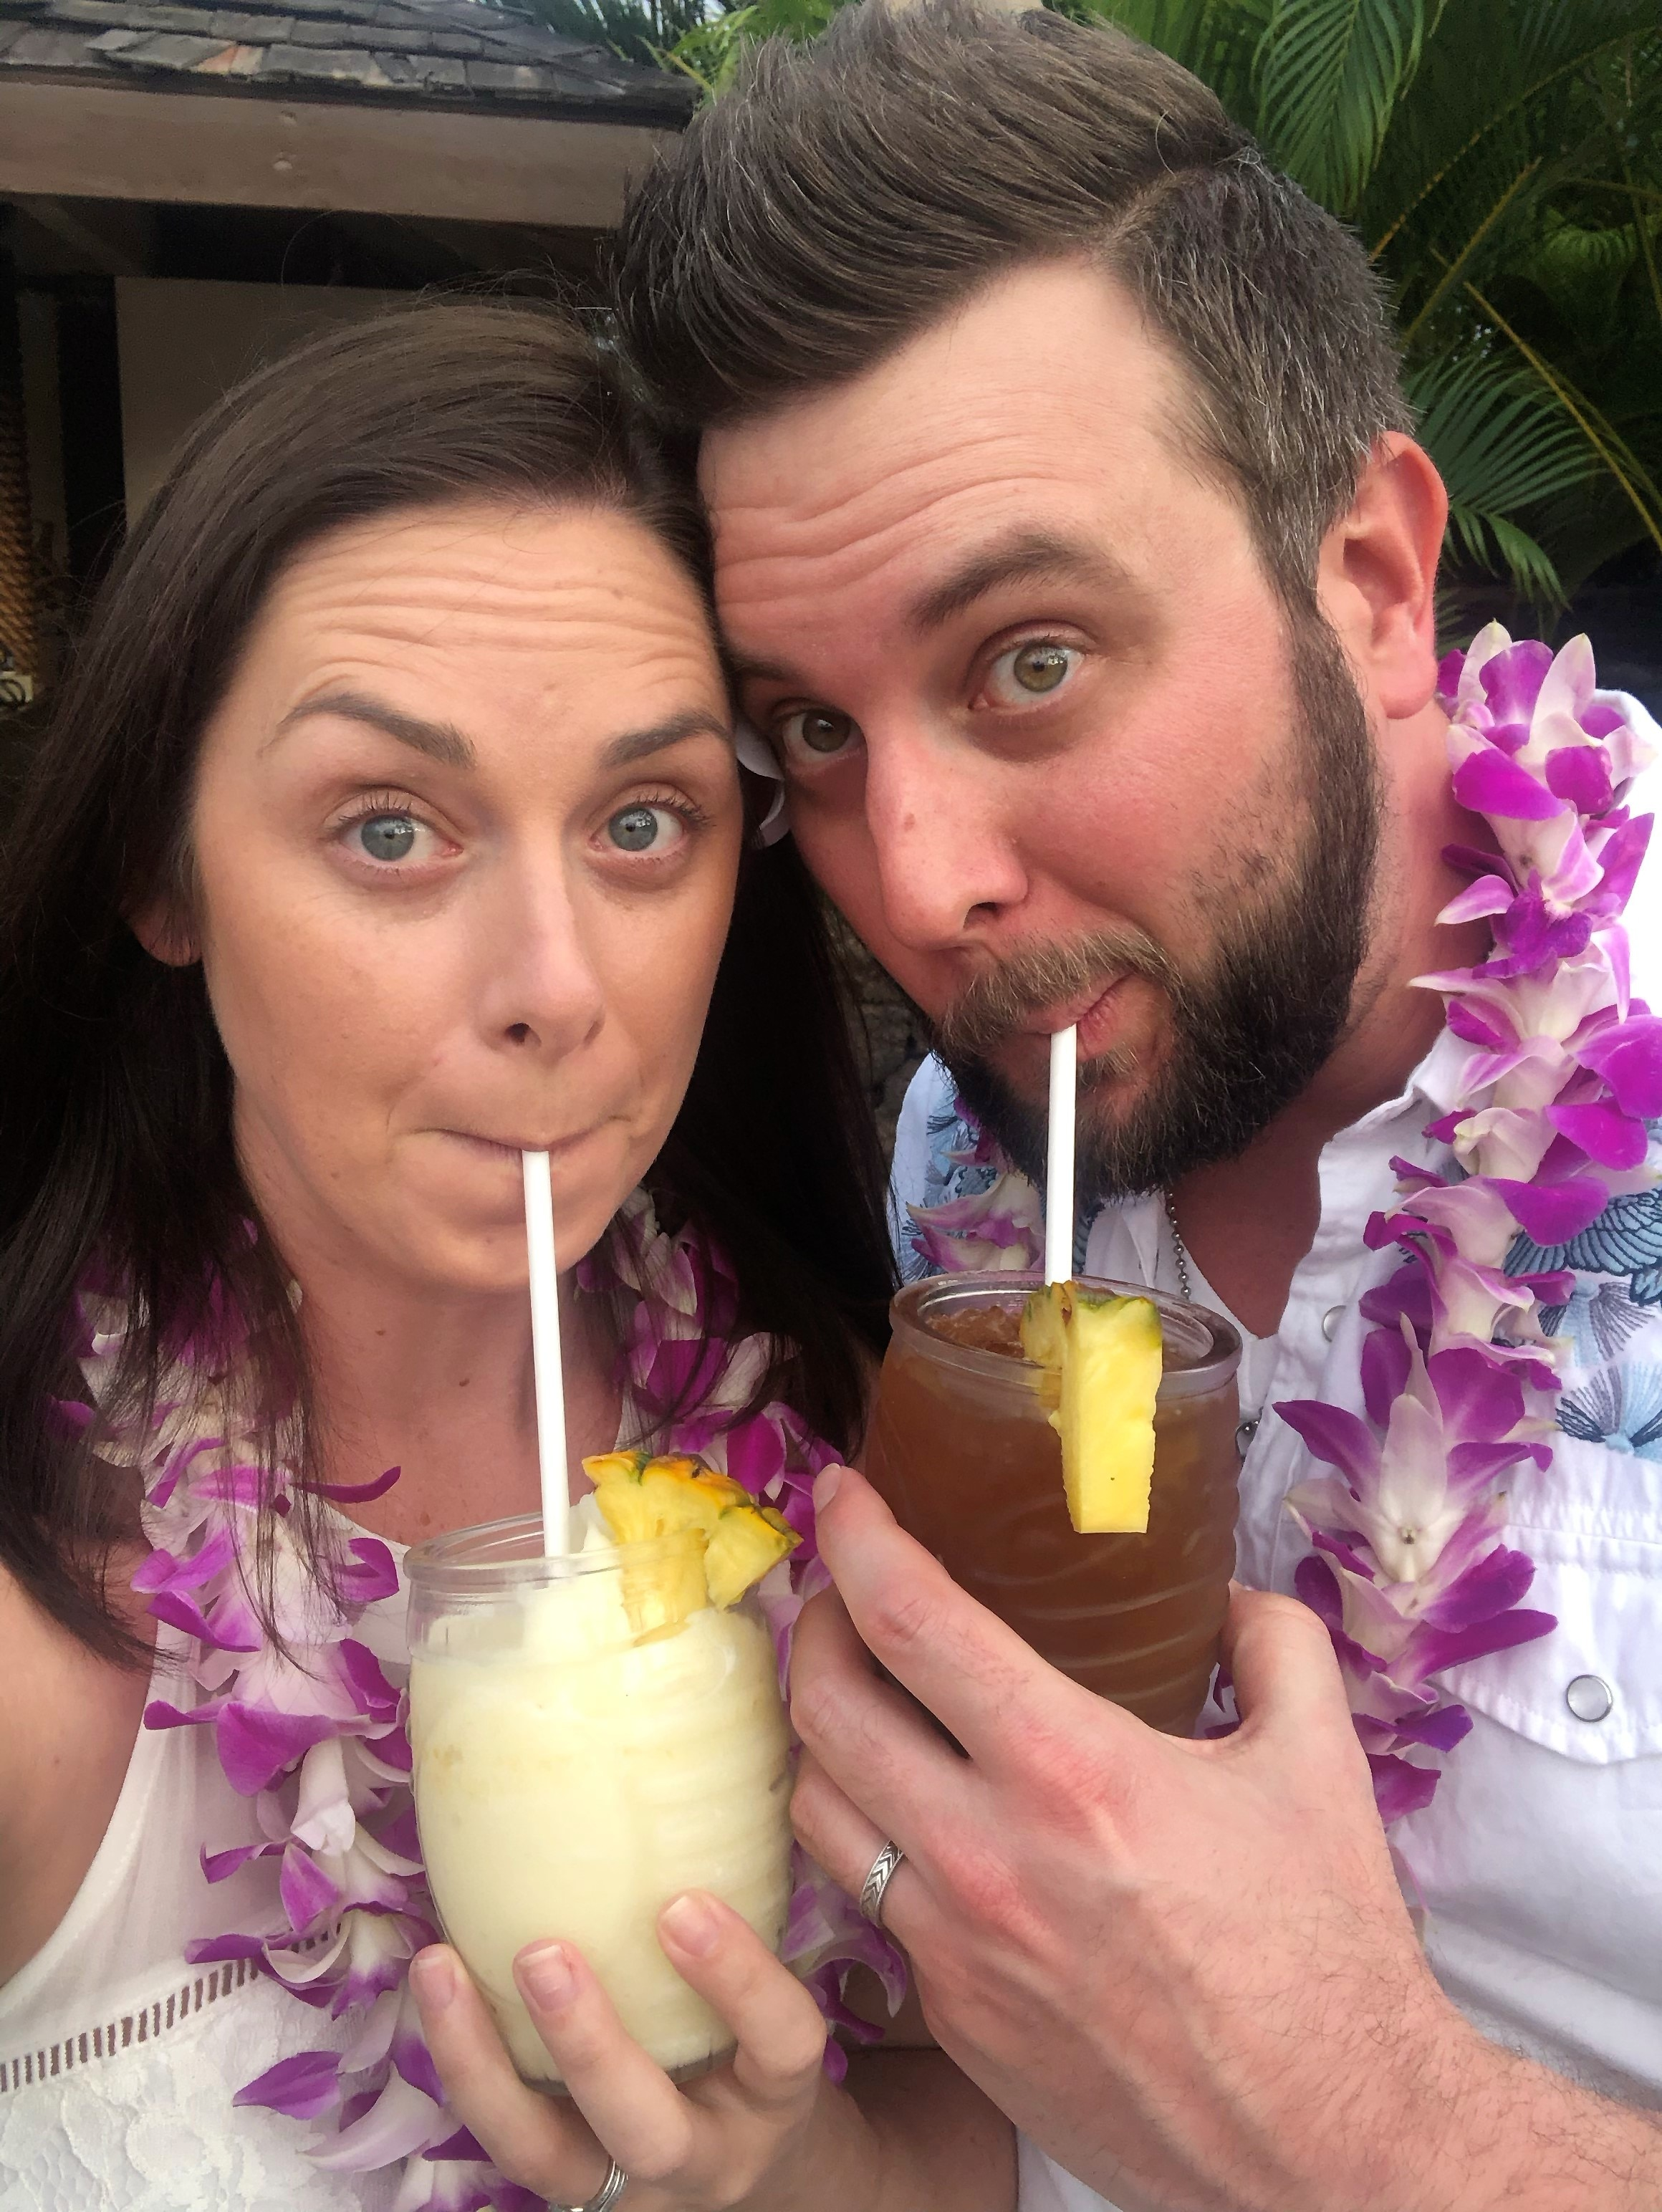 Newlyweds enjoying a drink on their honeymoon at Hilton Grand Vacations Ocean Tower at Hilton Waikoloa Village in Hawaii.